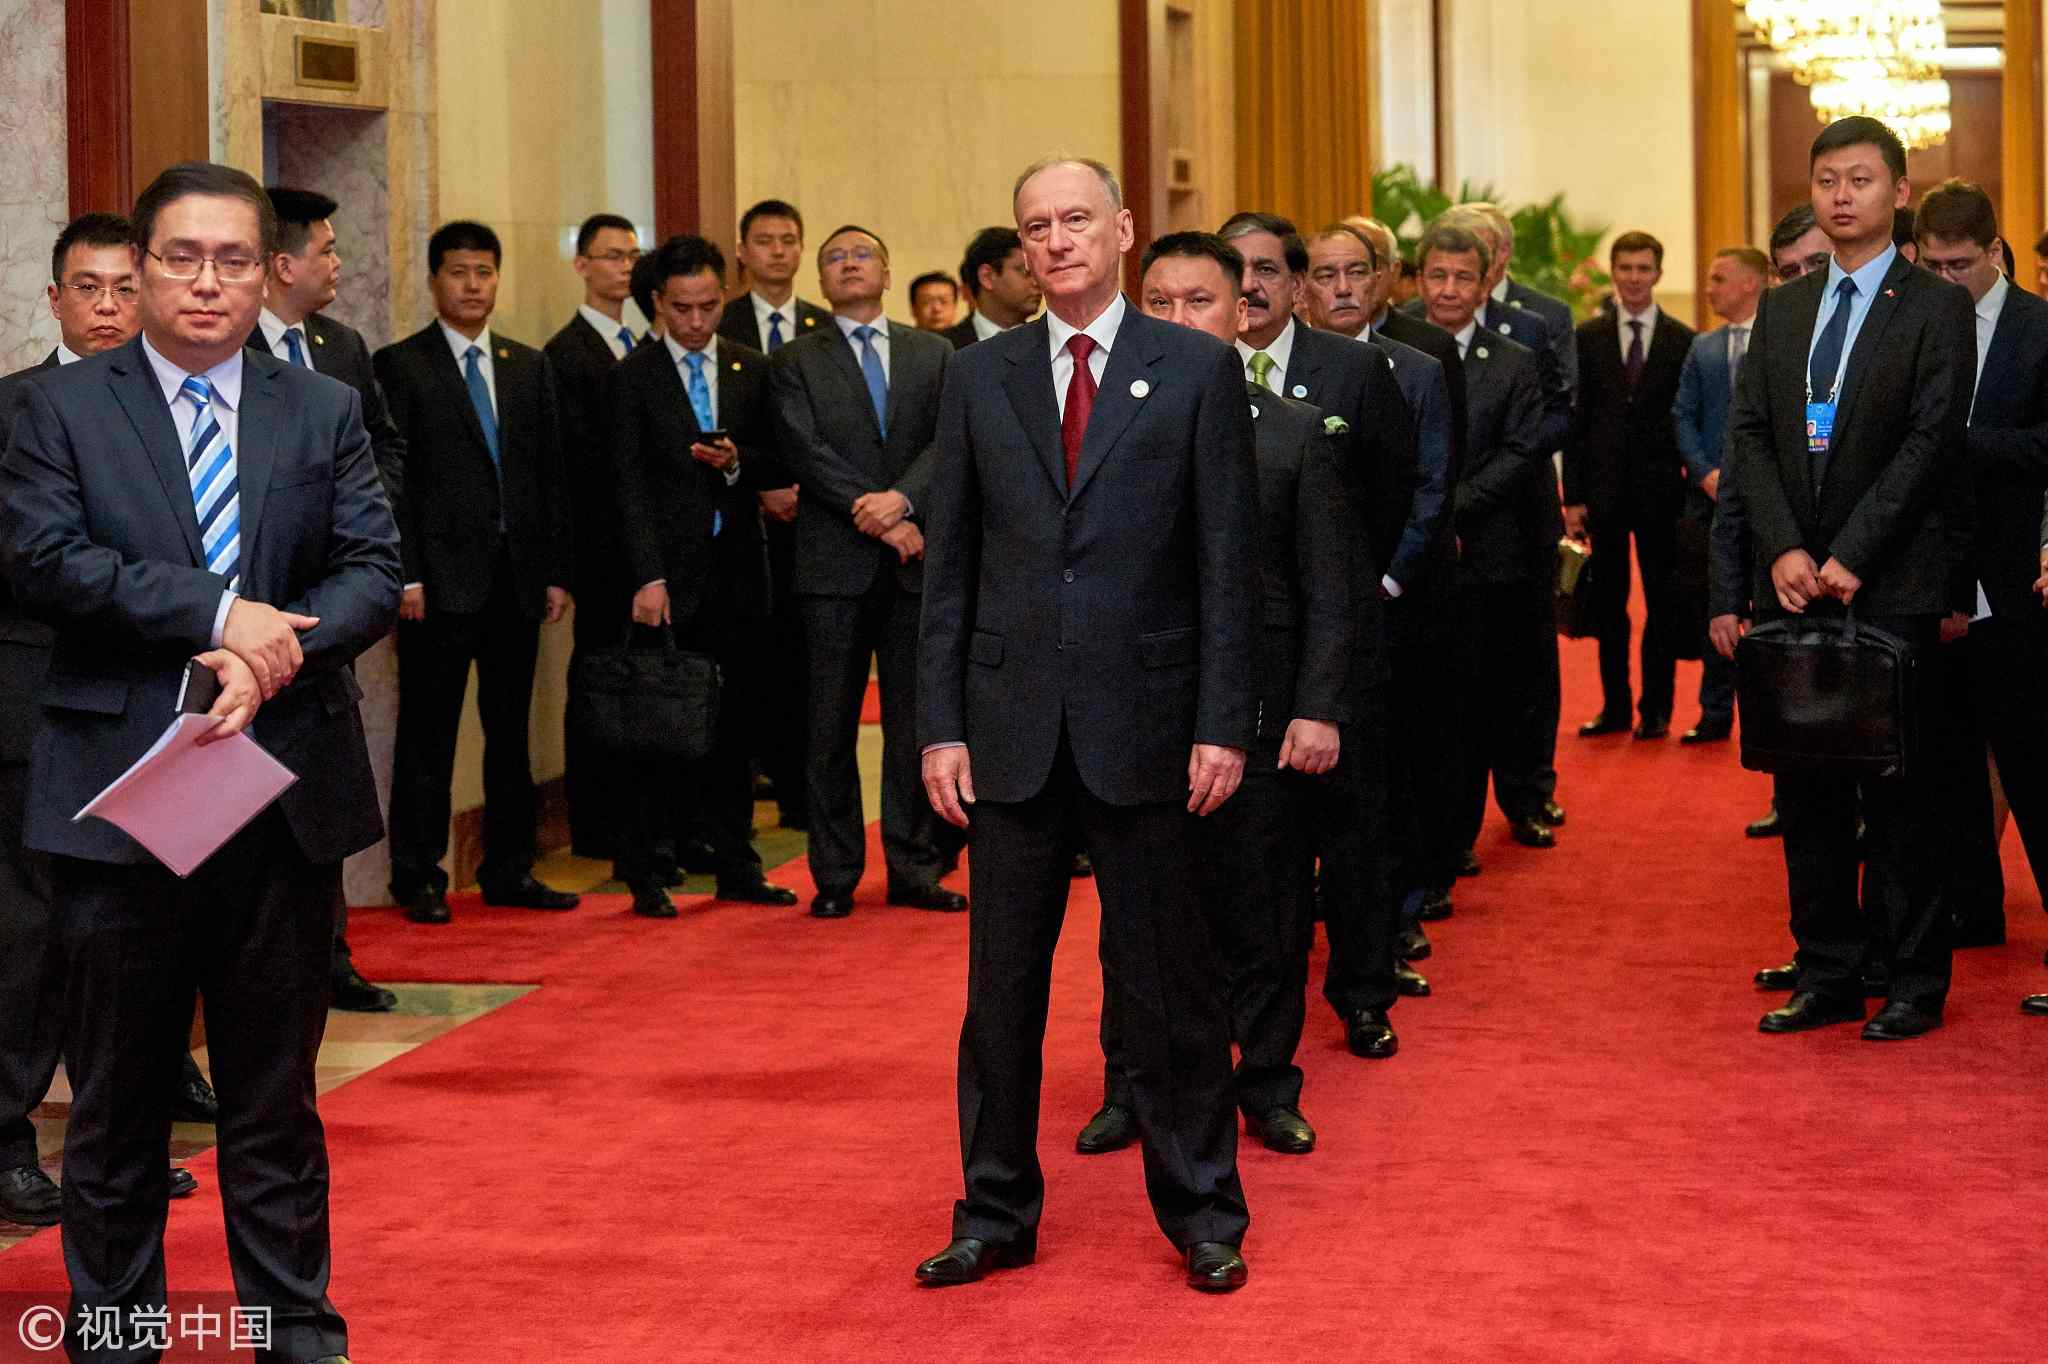 Opinion: What can we expect from the SCO summit in Qingdao